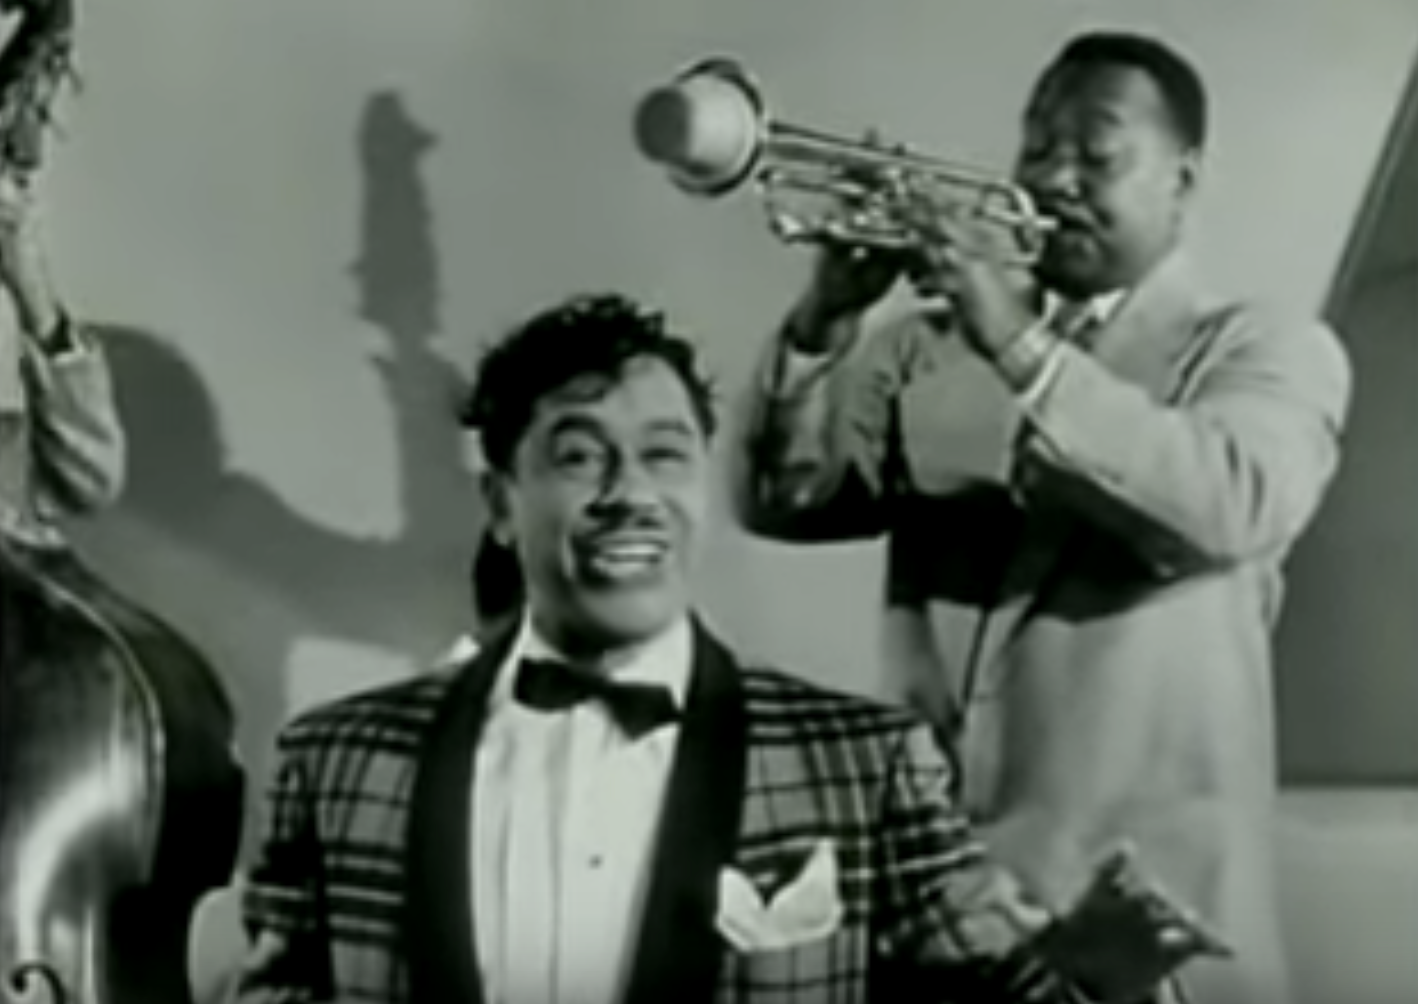 Cab Calloway: Minnie the Moocher - 1950's